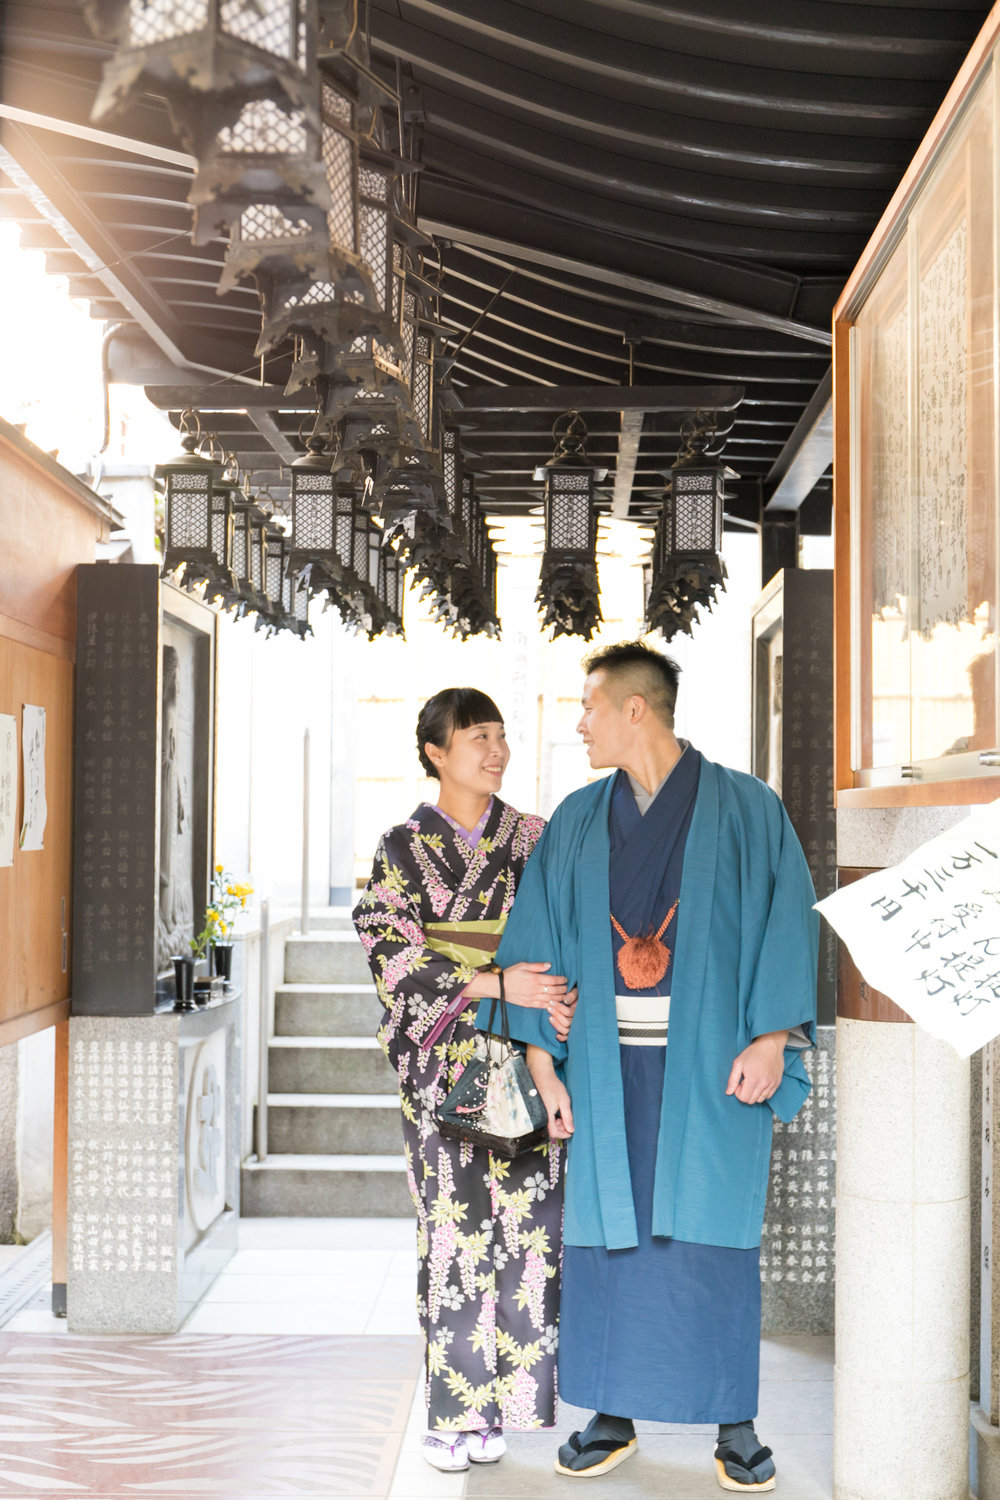 Photography tour in Osaka with kimono